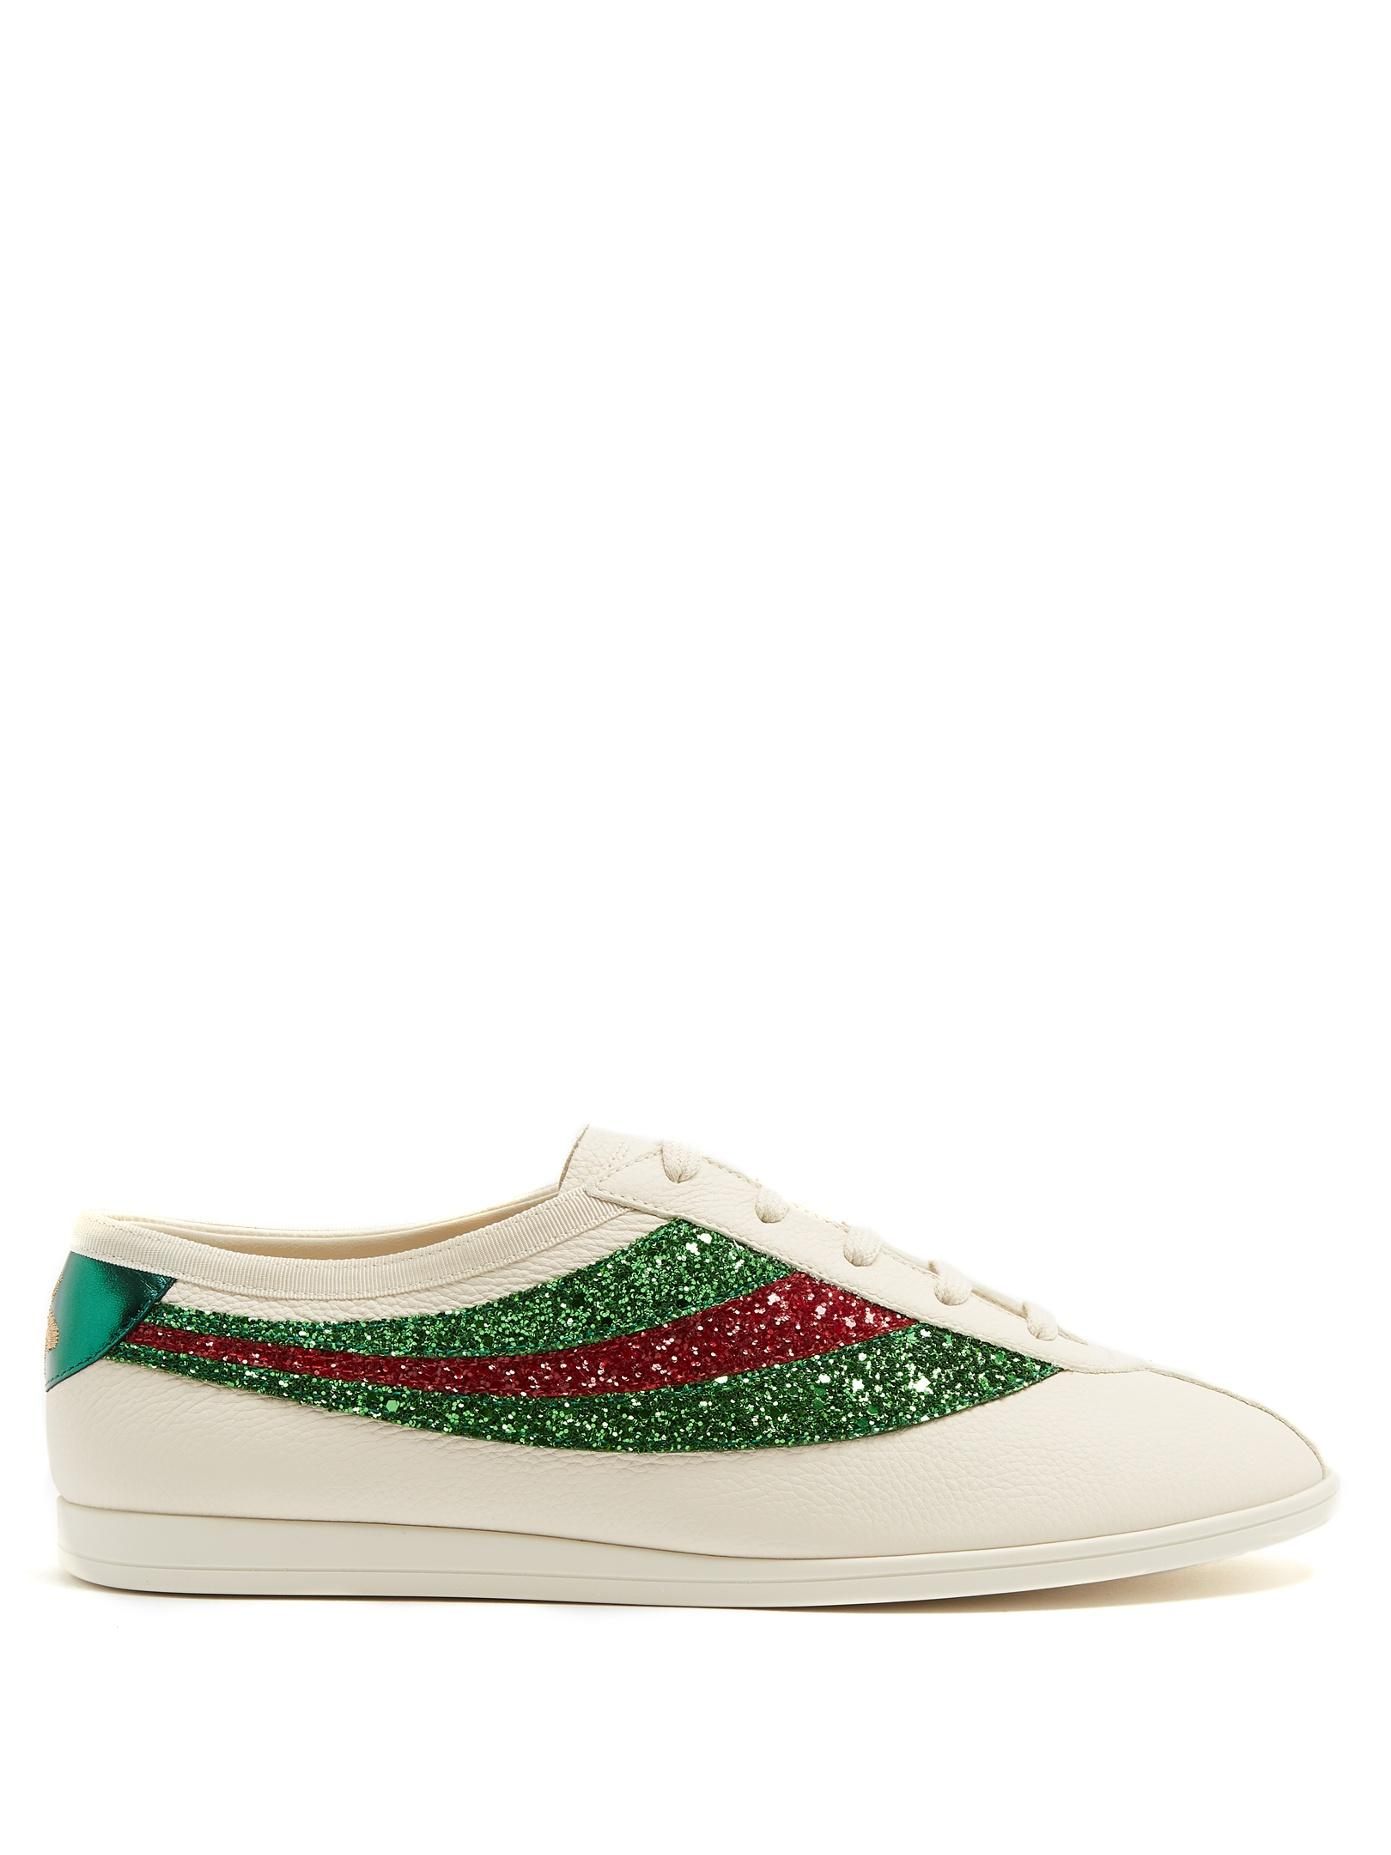 72b078c5d1f Gucci - Falacer Glitter Embellished Leather Trainers - Mens - White Multi